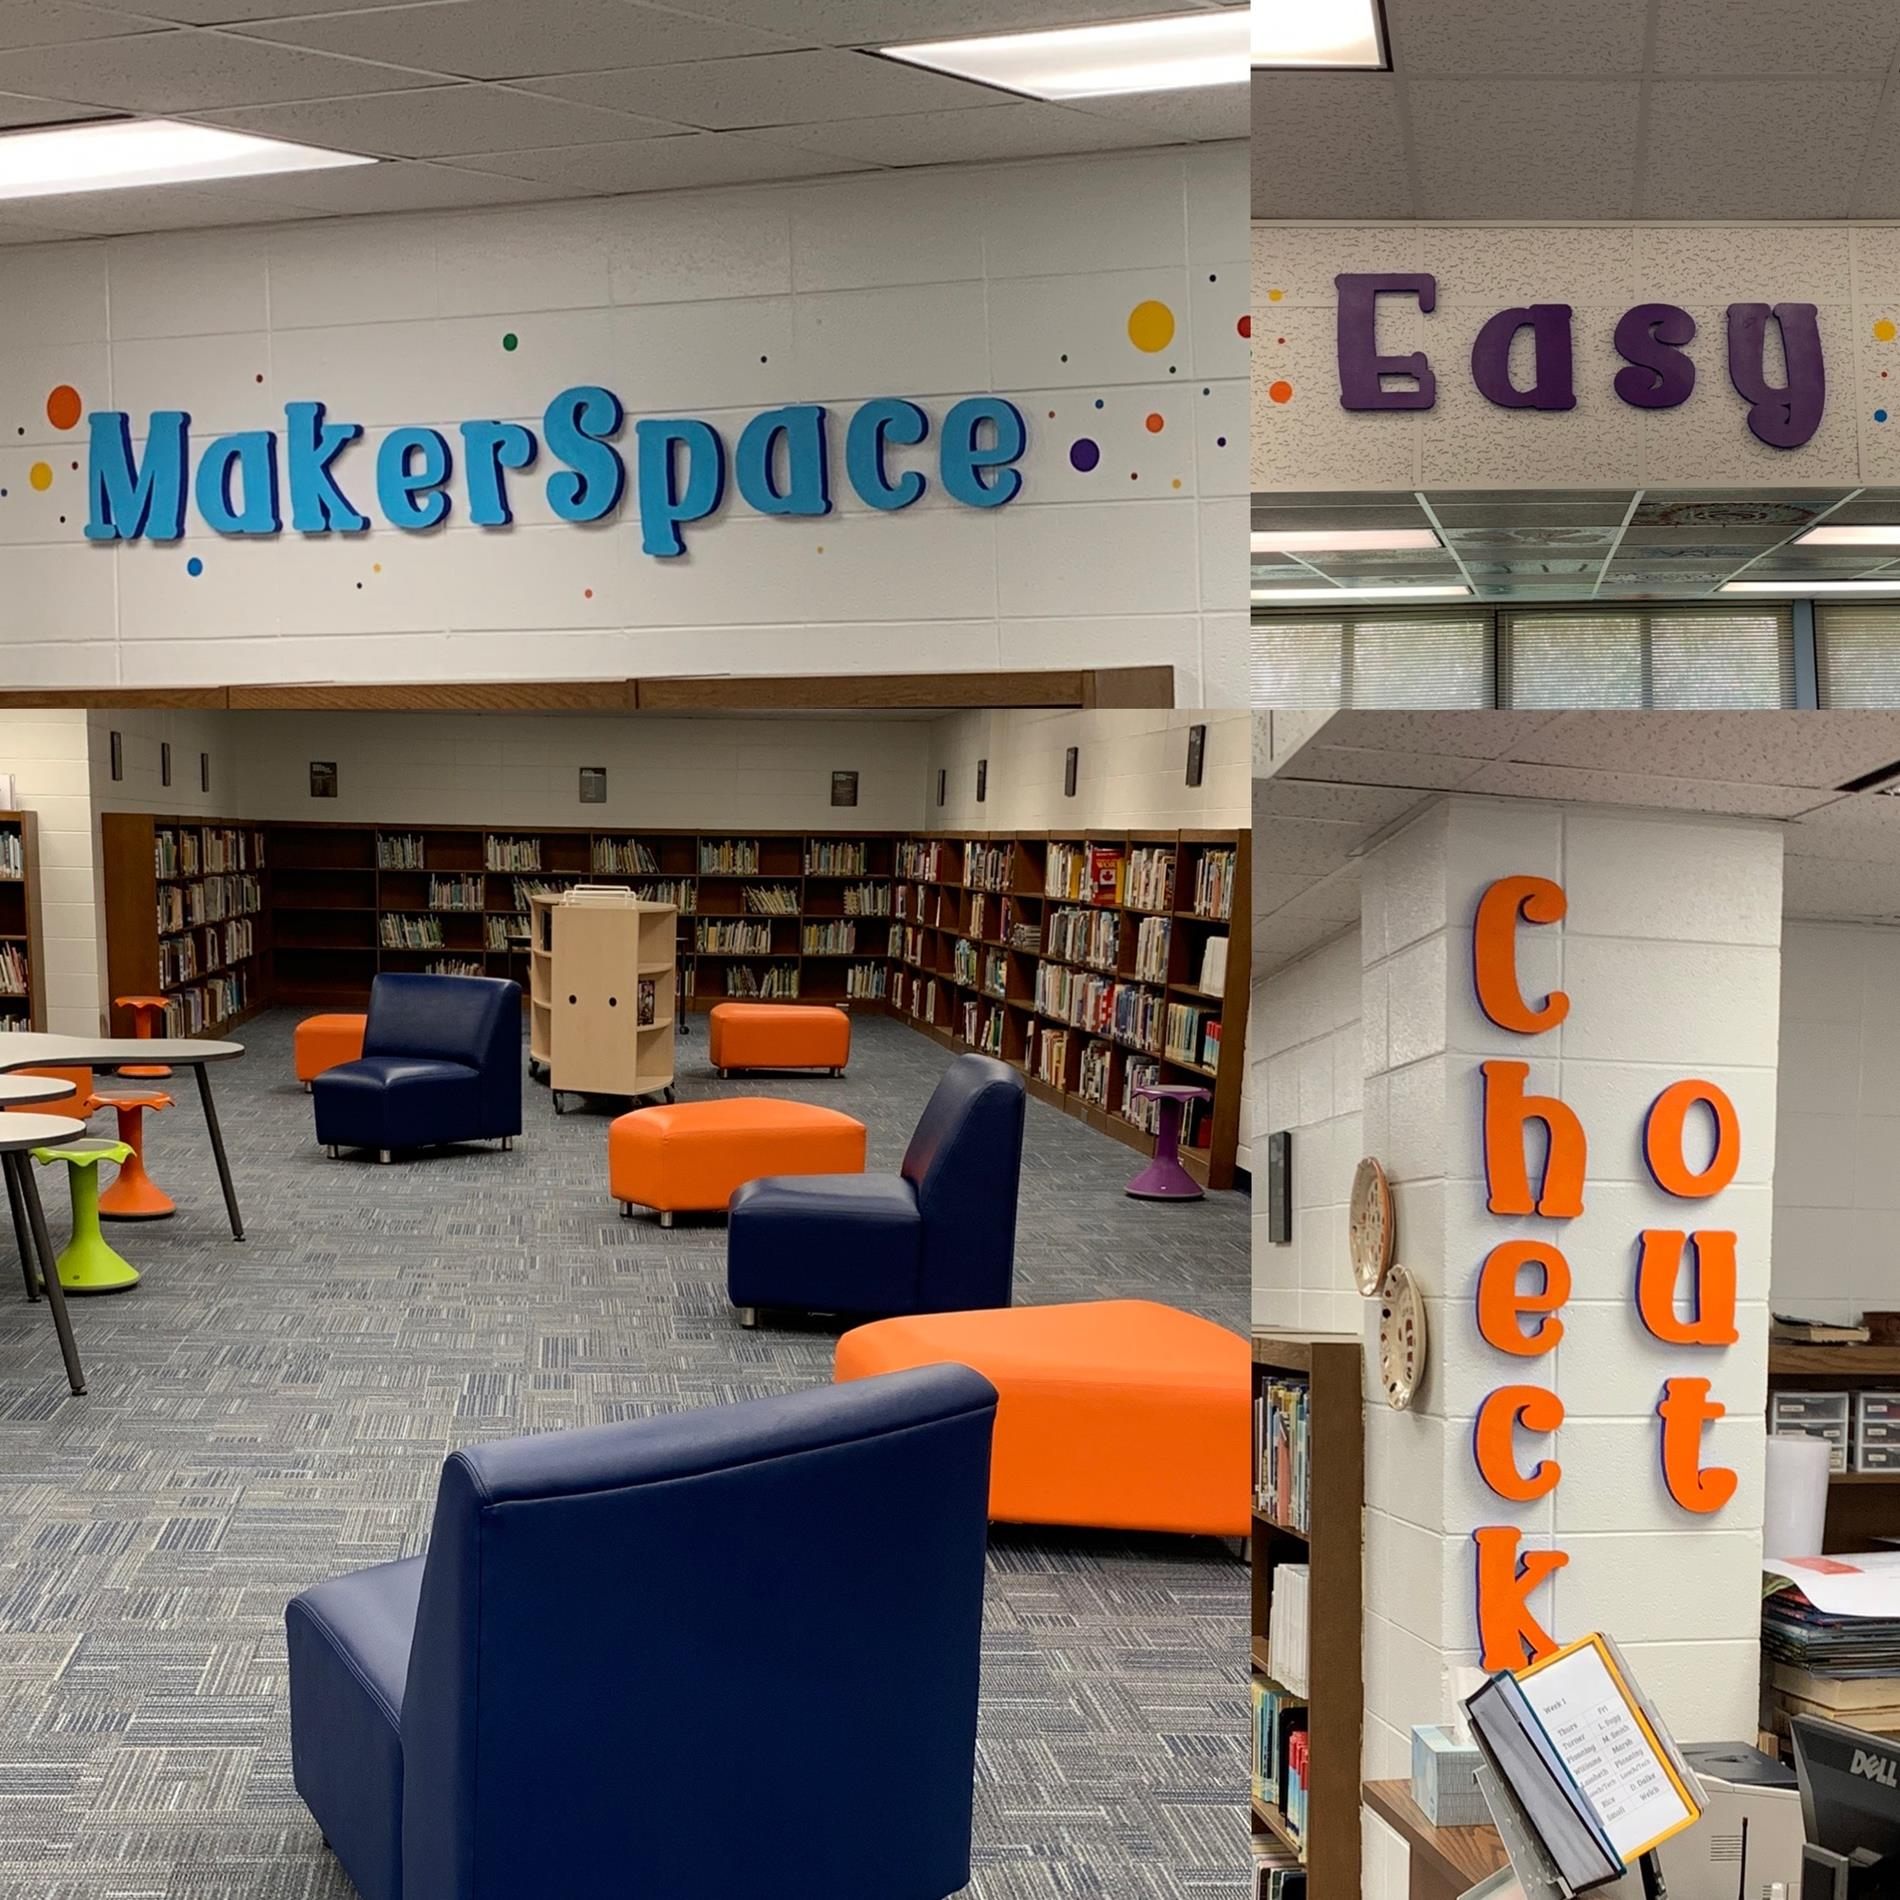 New library section words MakerSpace, Easy, and Check out